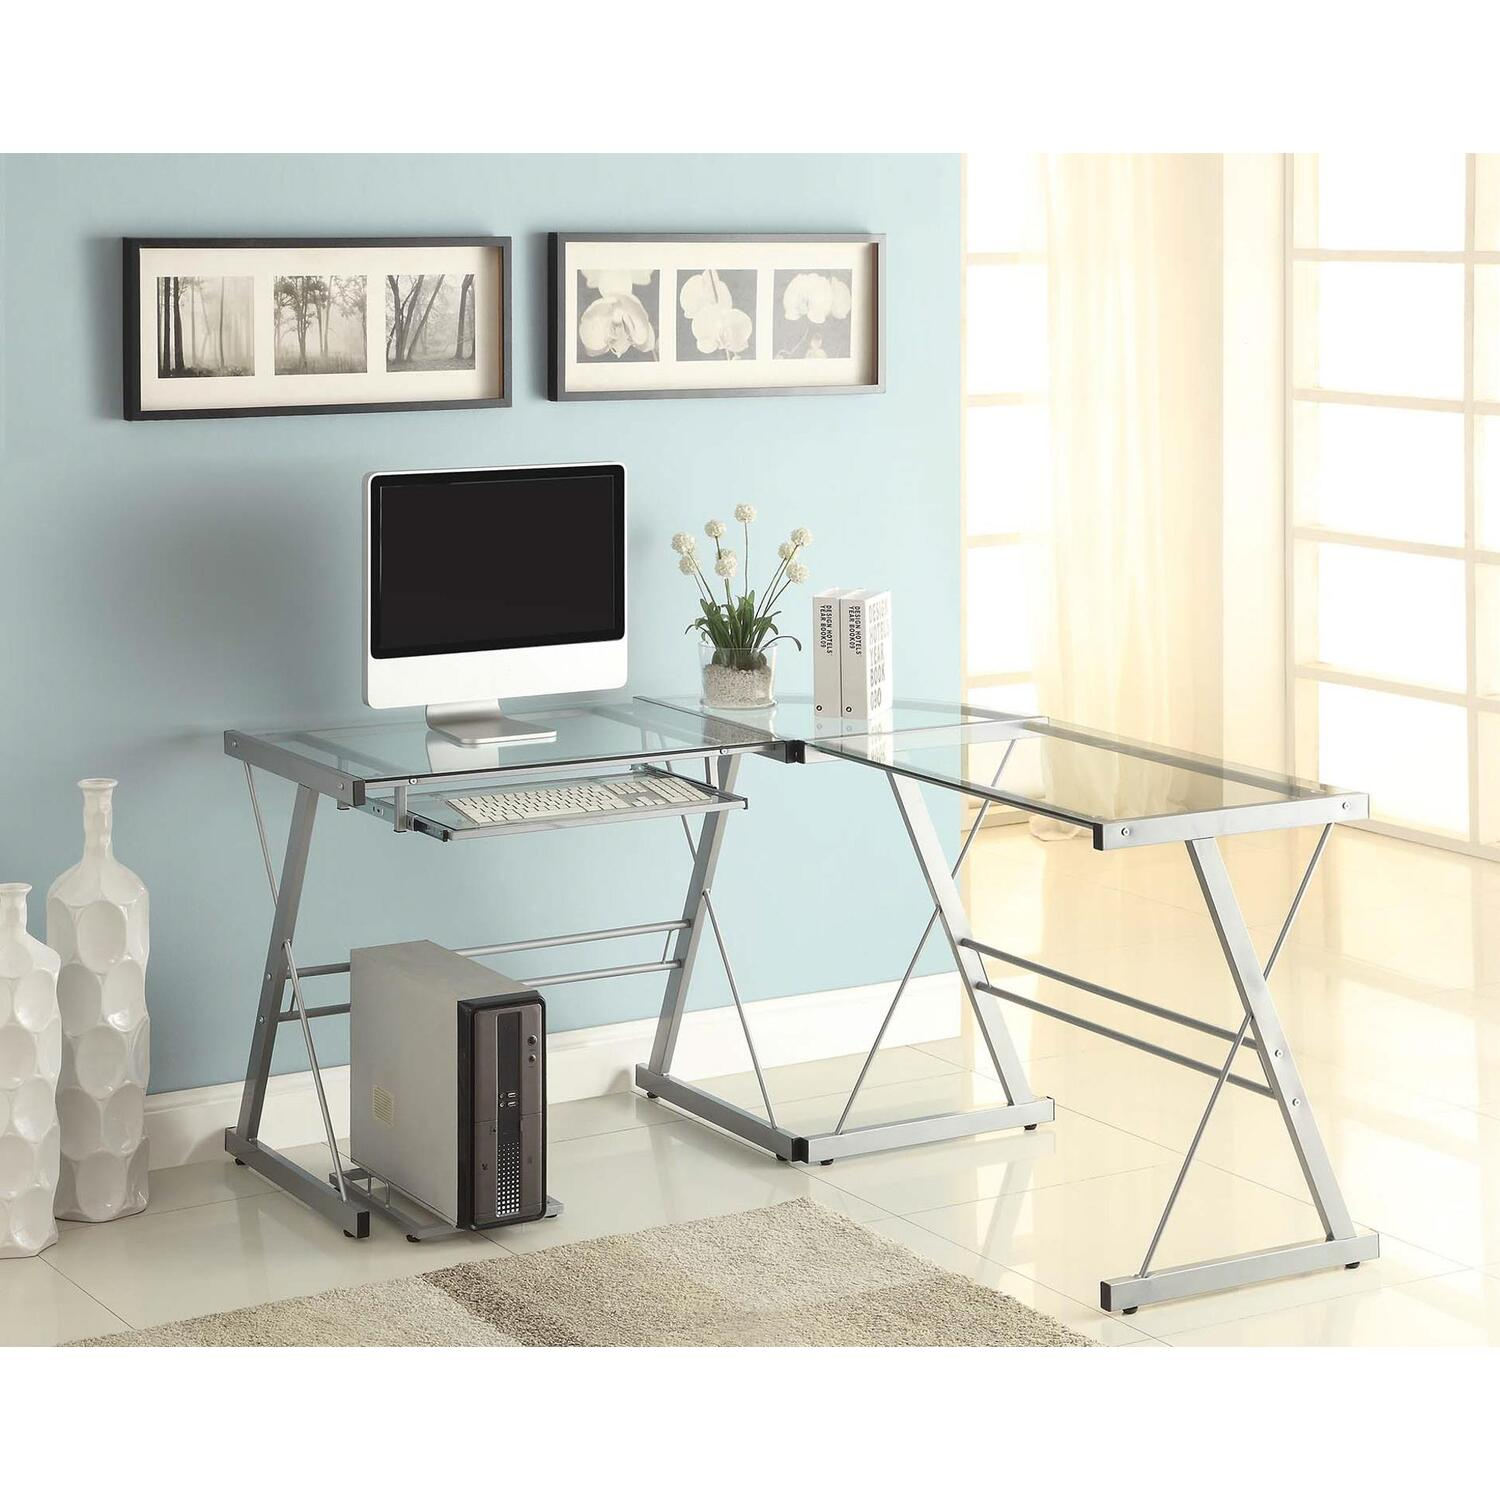 naomi home 55111 naomi home 3 piece sedalia glass office desk